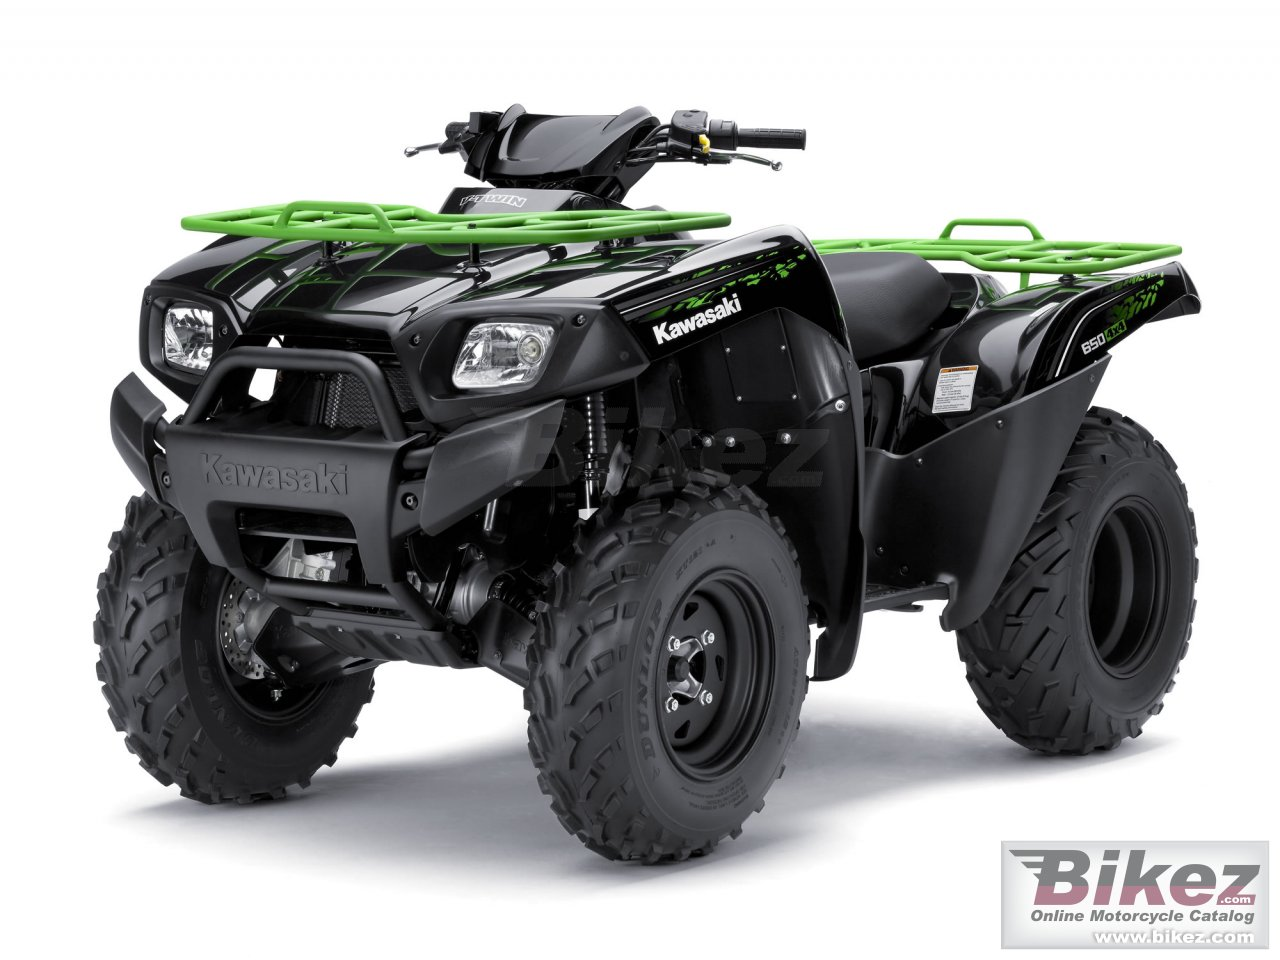 Big Kawasaki brute force 650 4x4i picture and wallpaper from Bikez.com